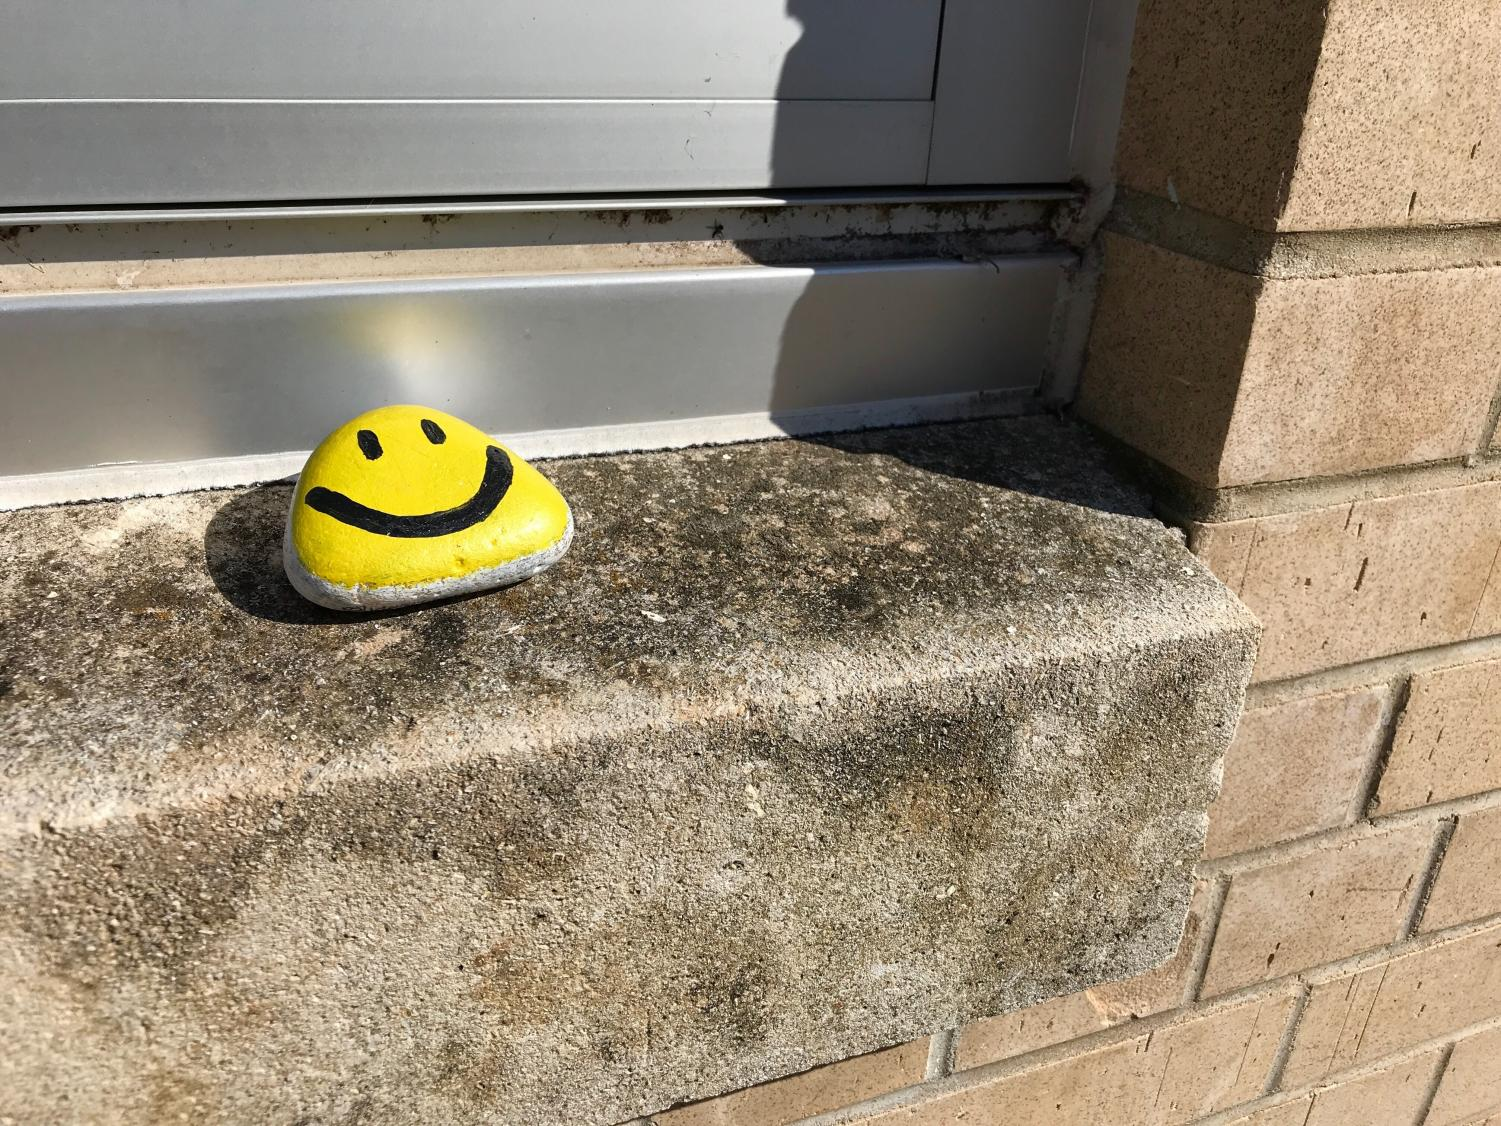 A Smiley Stone sits on a window sill outside the Harter Union.